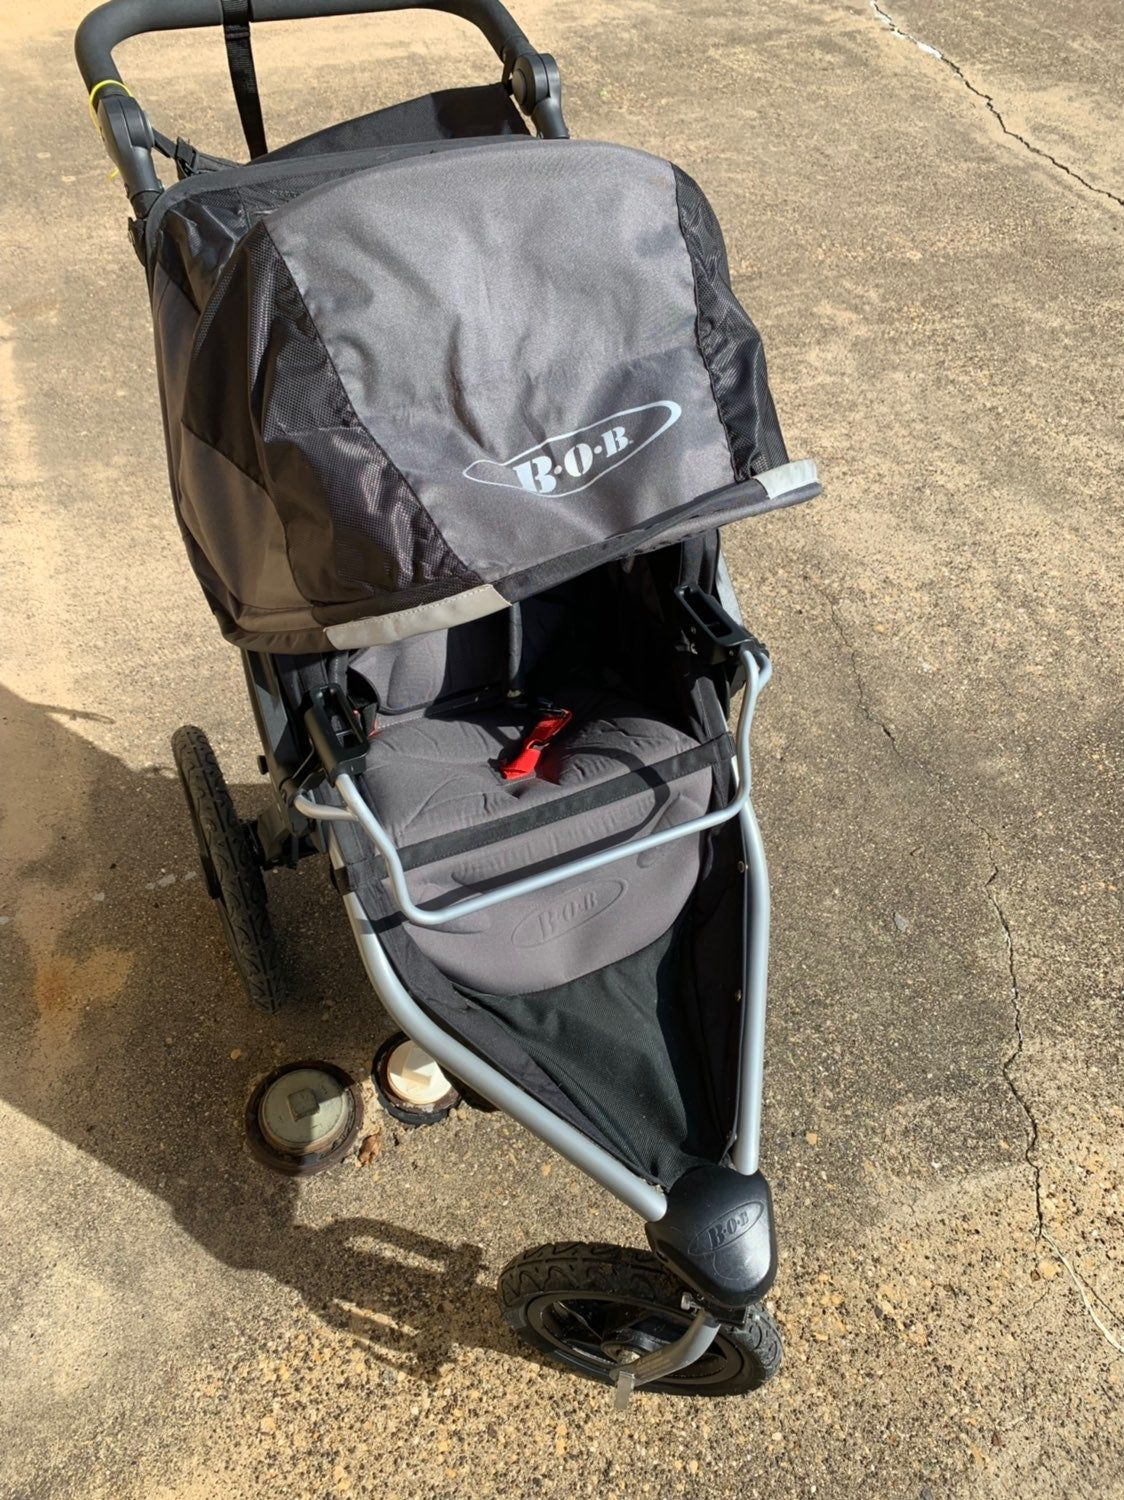 Bob revolution flex stroller Good used condition I loved